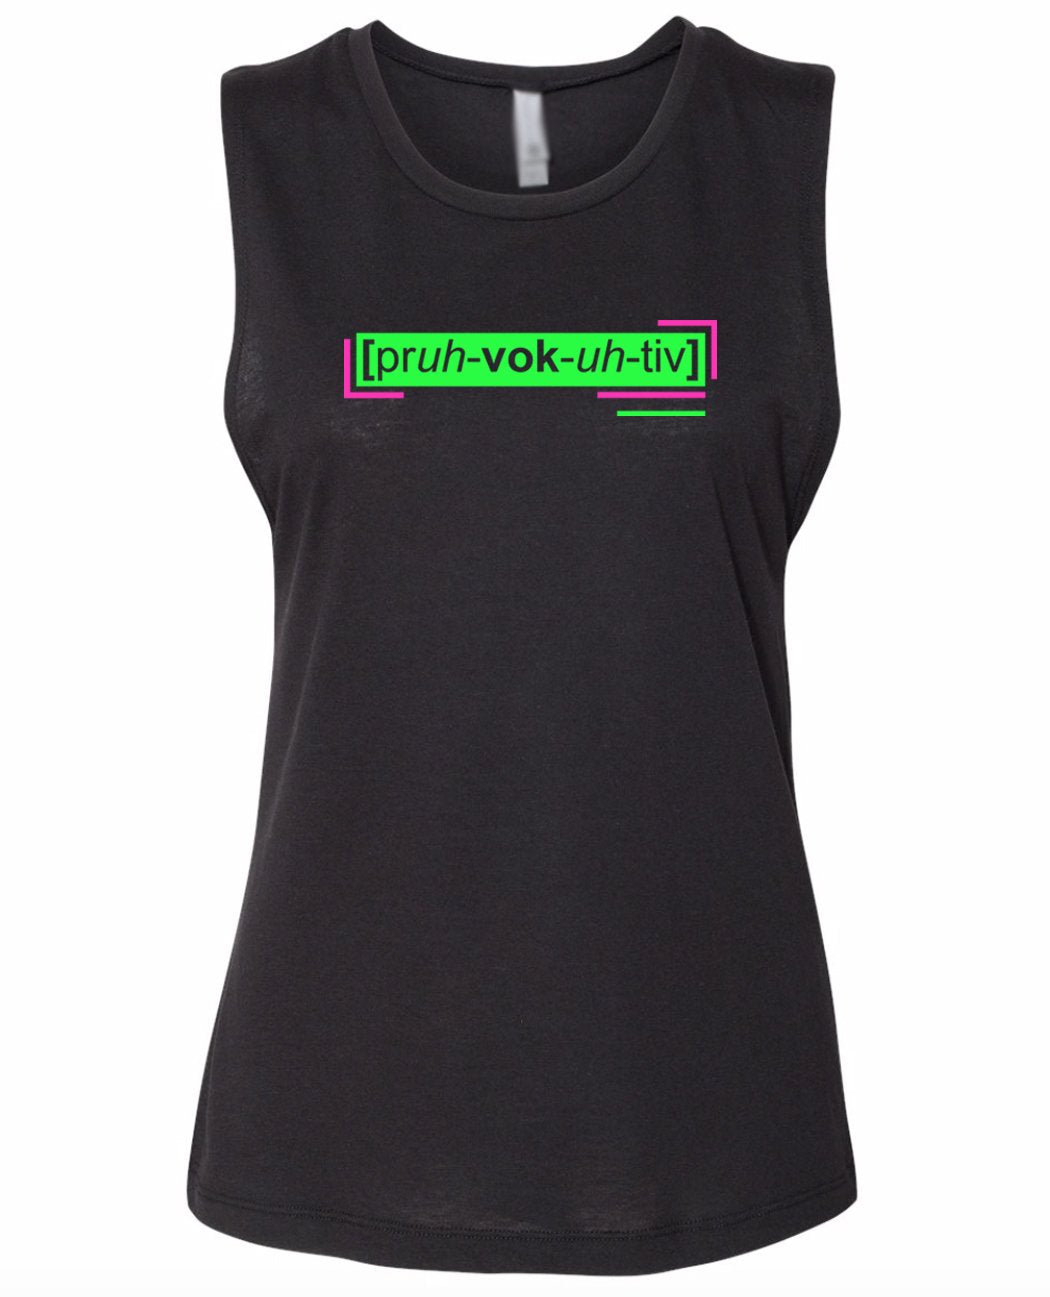 florescent green provocative neon streetwear tank top for women